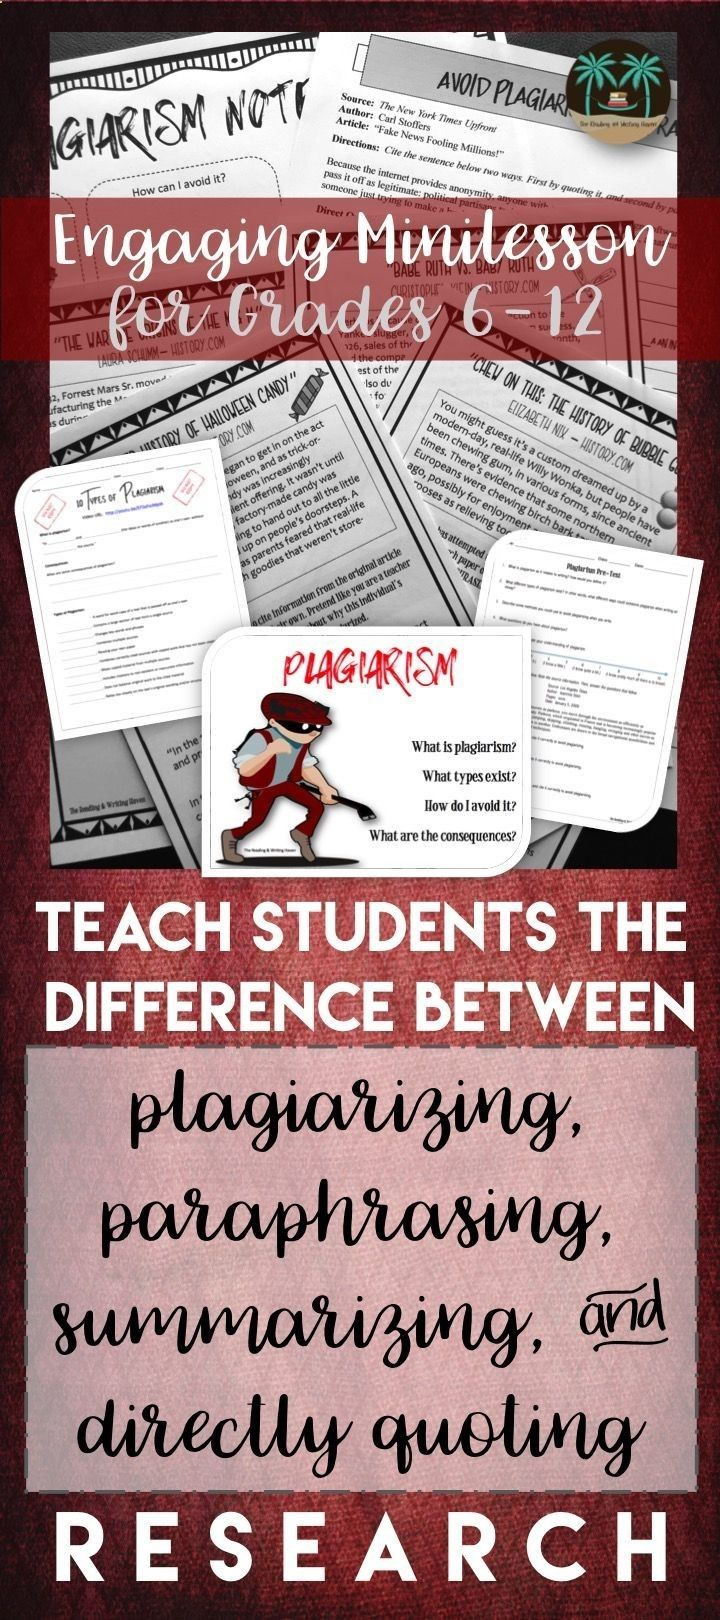 Teach Student The Basic Of Plagiarizing Summarizing Paraphrasing And Directly Quoting Research With Thi Conci Plagiarism Lesson Teaching Writing Proper